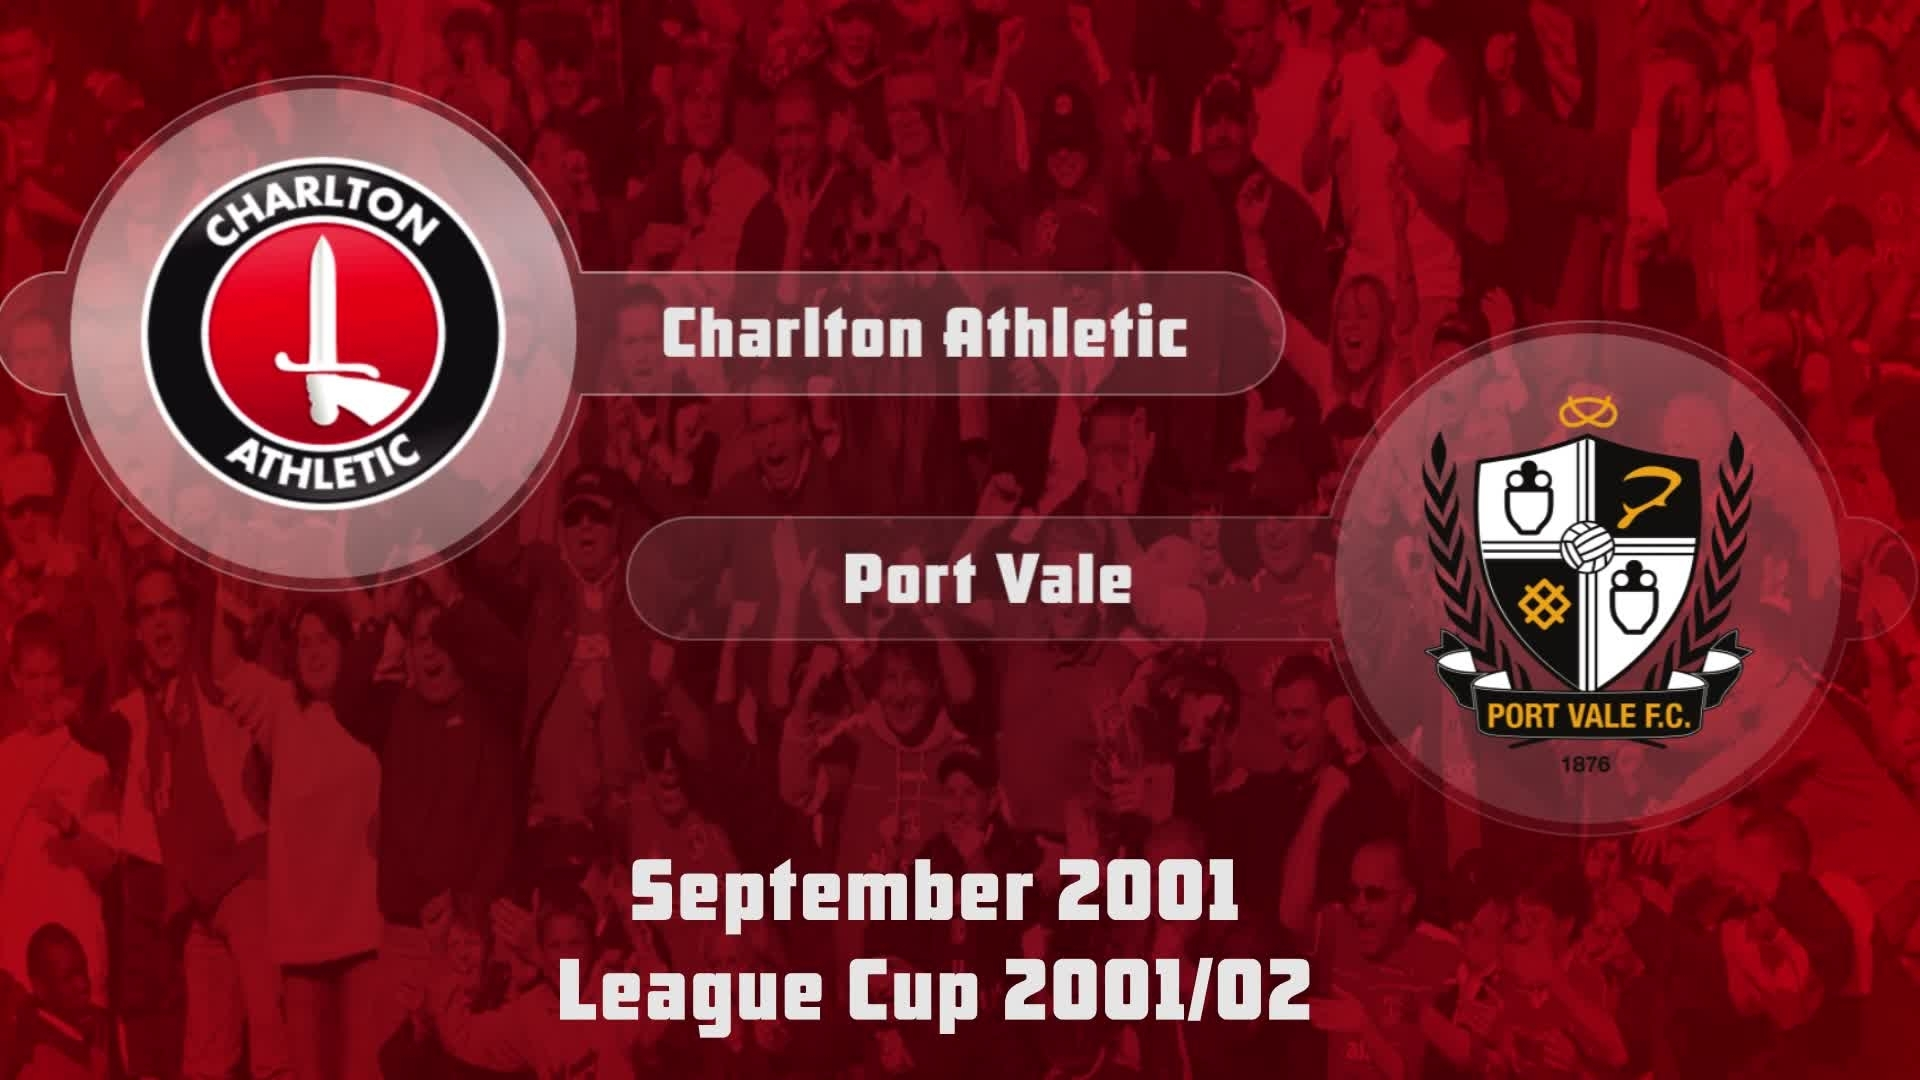 04 HIGHLIGHTS | Charlton 2 Port Vale 0 (League Cup Sept 2001)